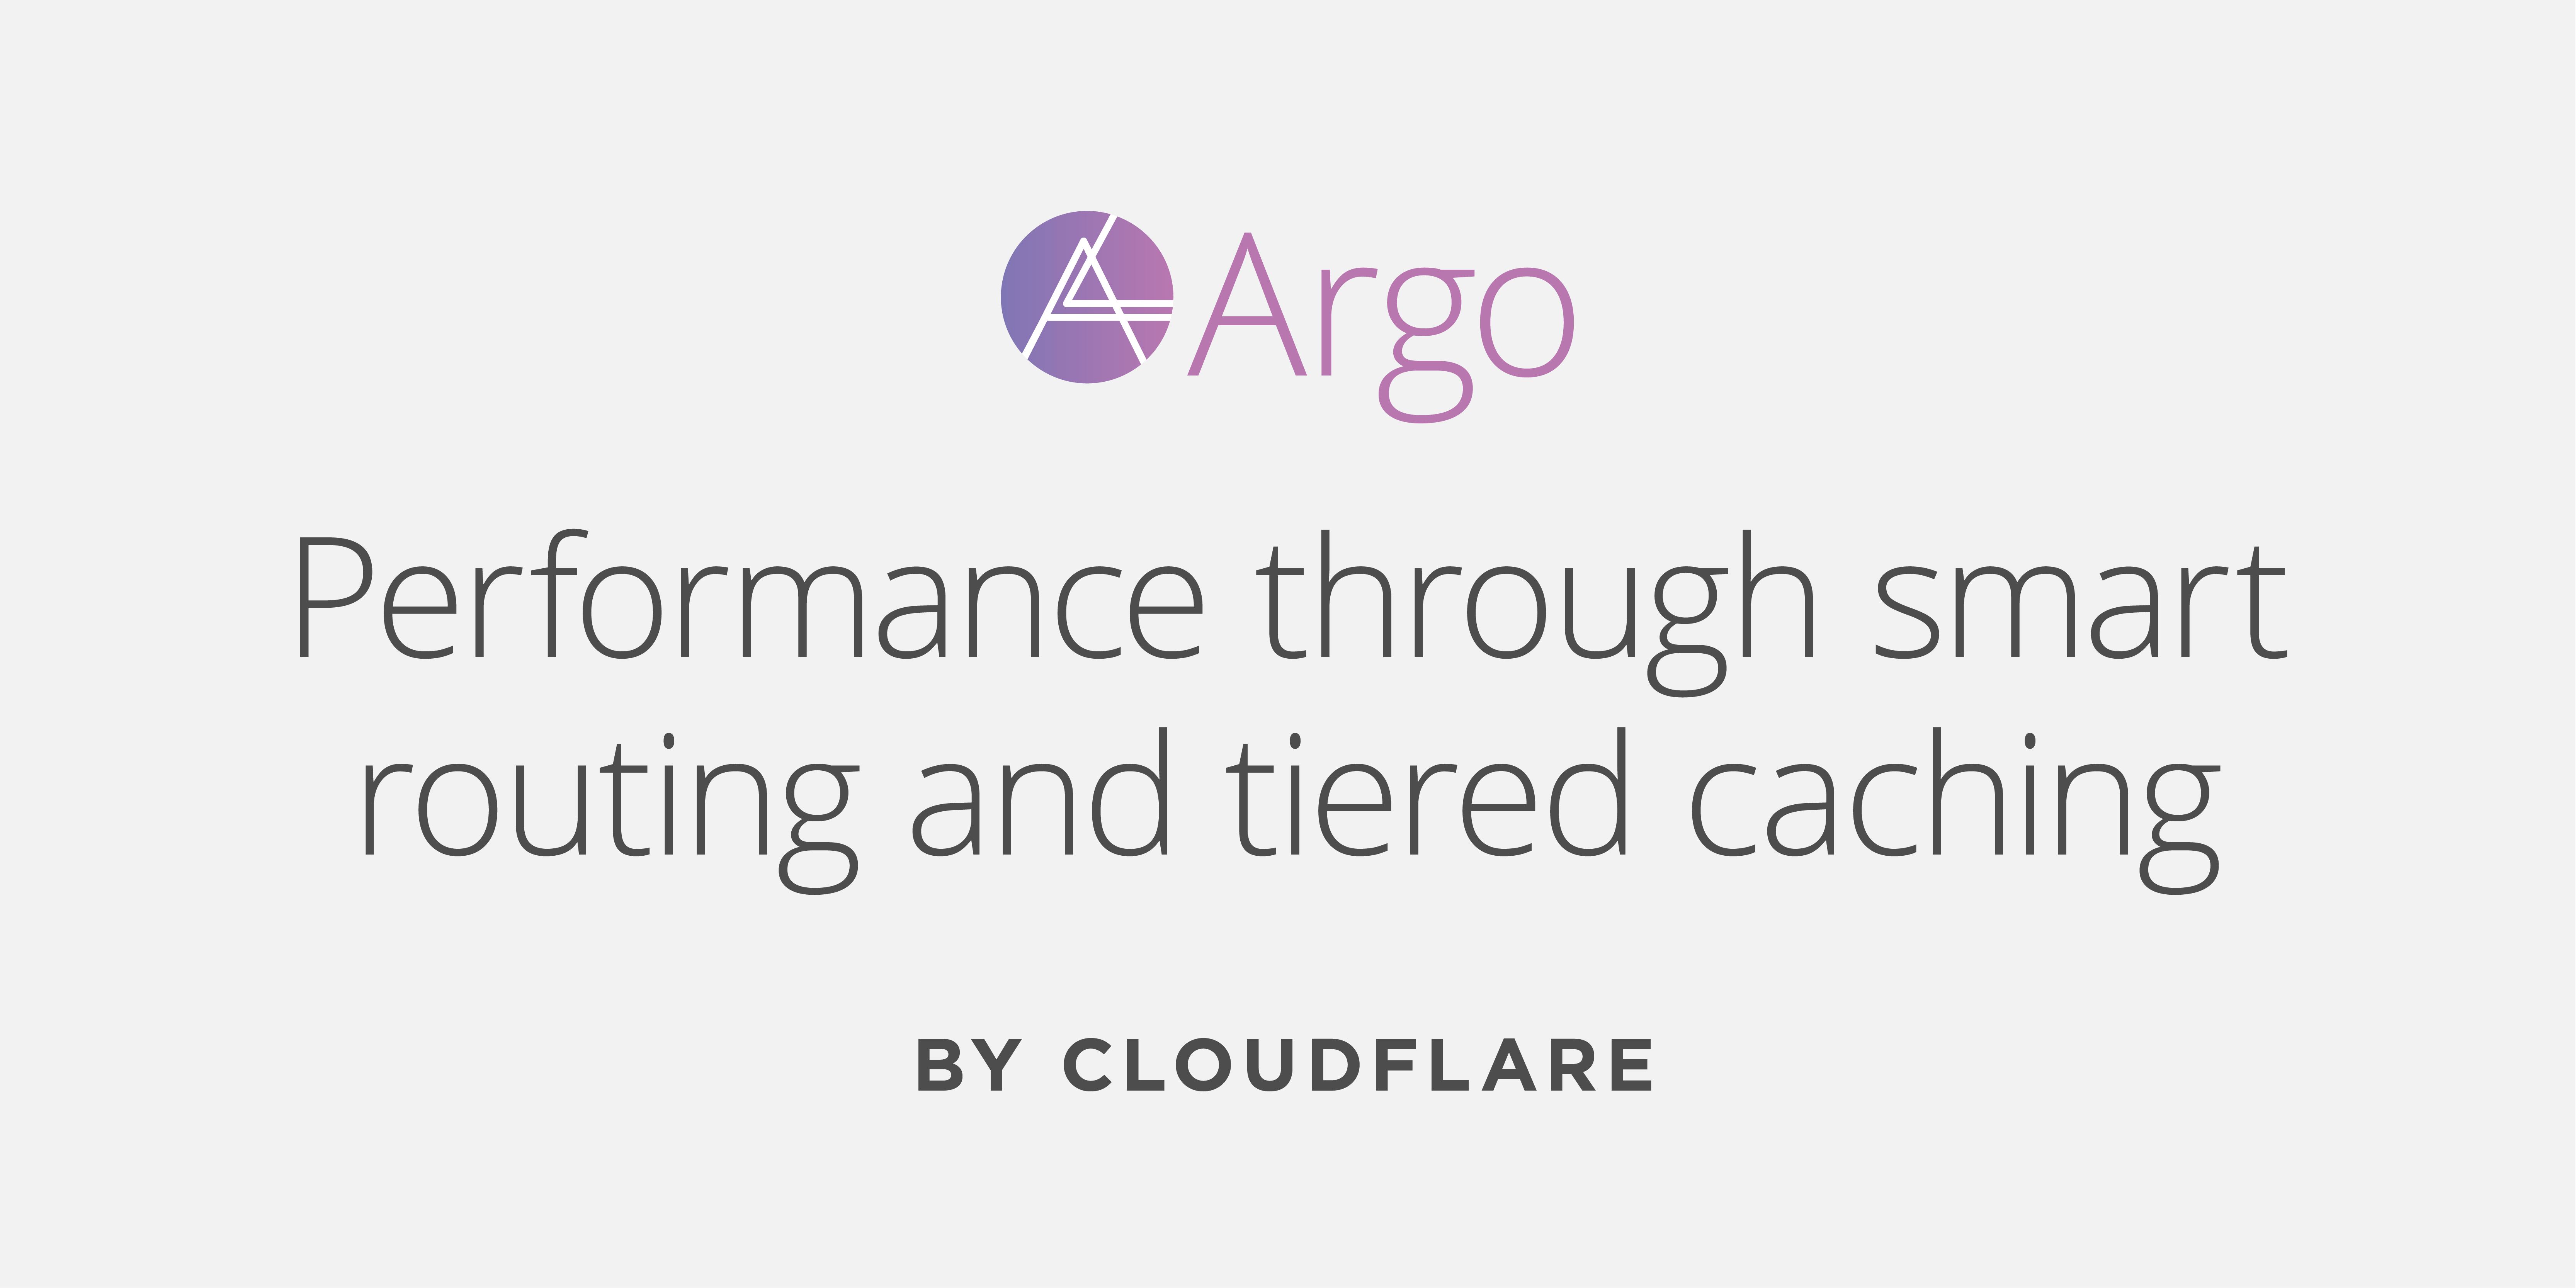 Introducing Argo — A faster, more reliable, more secure Internet for everyone